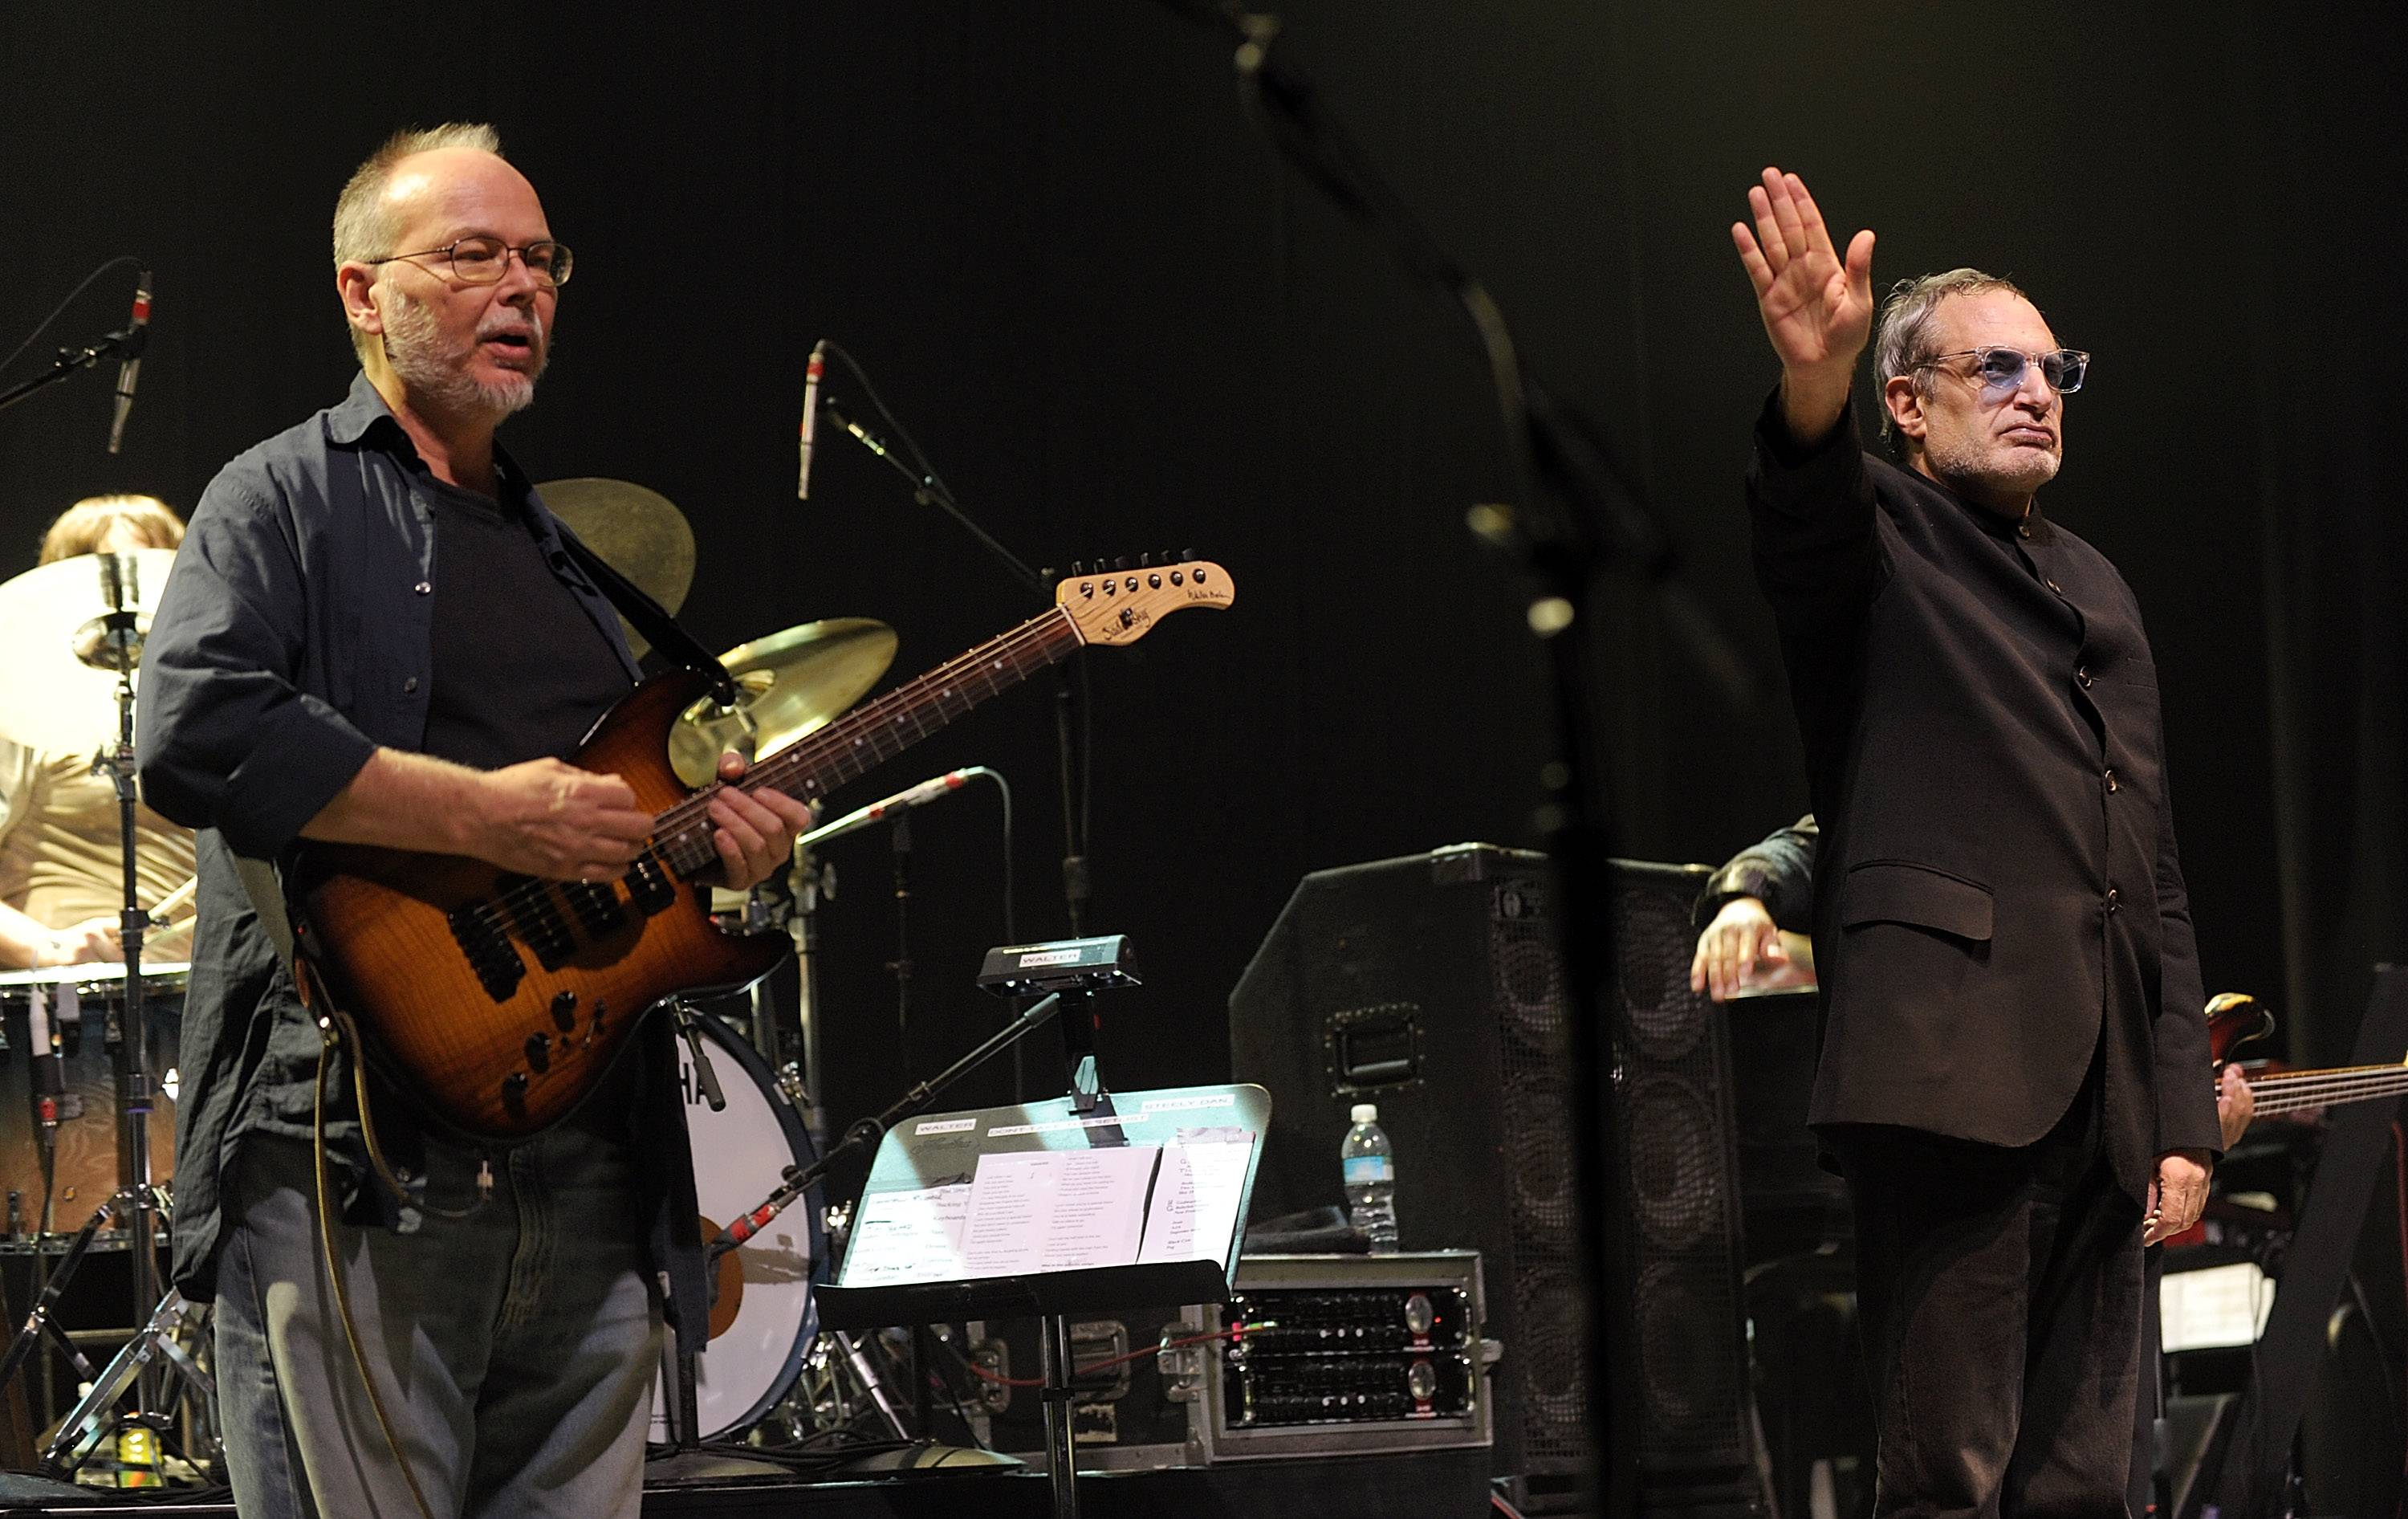 Musicians Walter Becker, left, and Donald Fagen of the band Steely Dan will play at the state fair on Aug. 15.